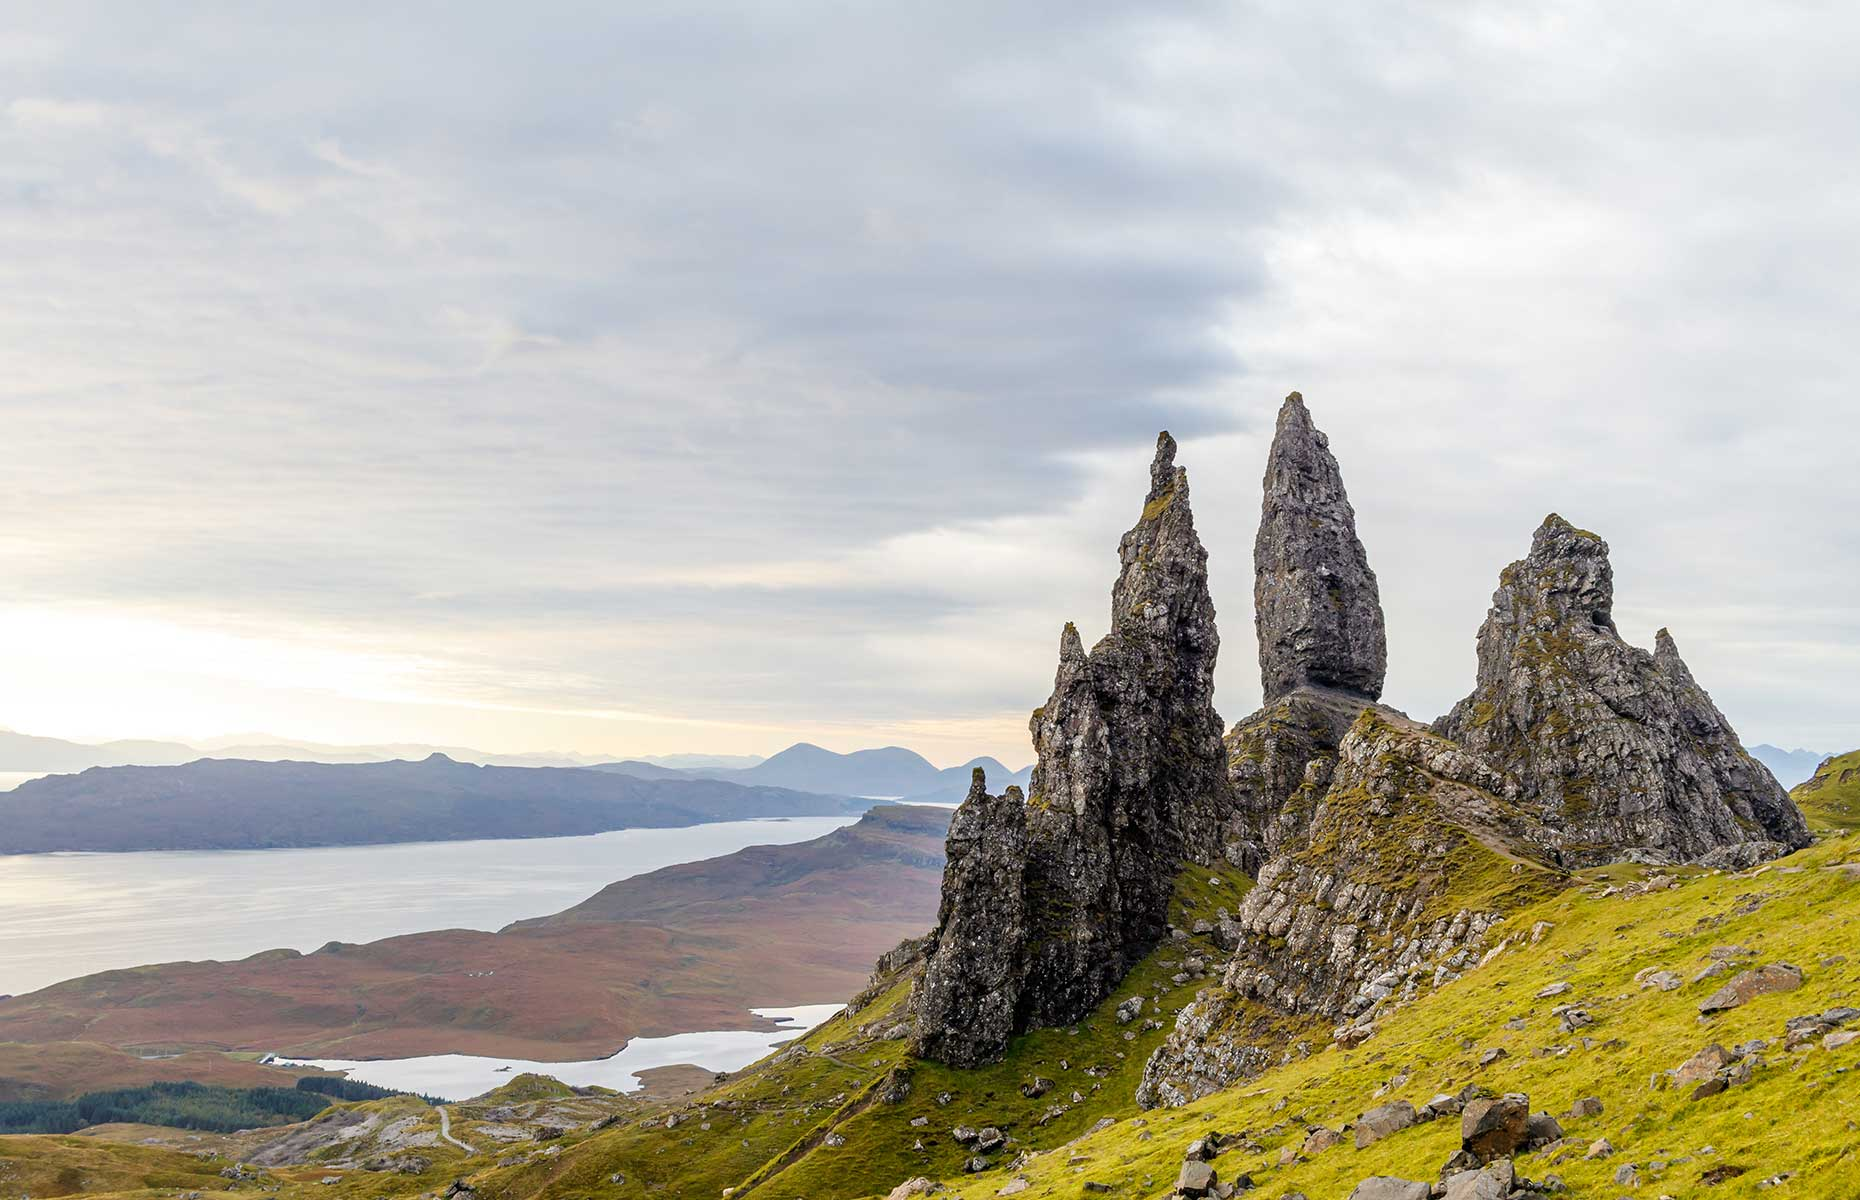 The Old Man of Storr is one of the Isle of Skye, in the Scottish Highlands, most popular attractions